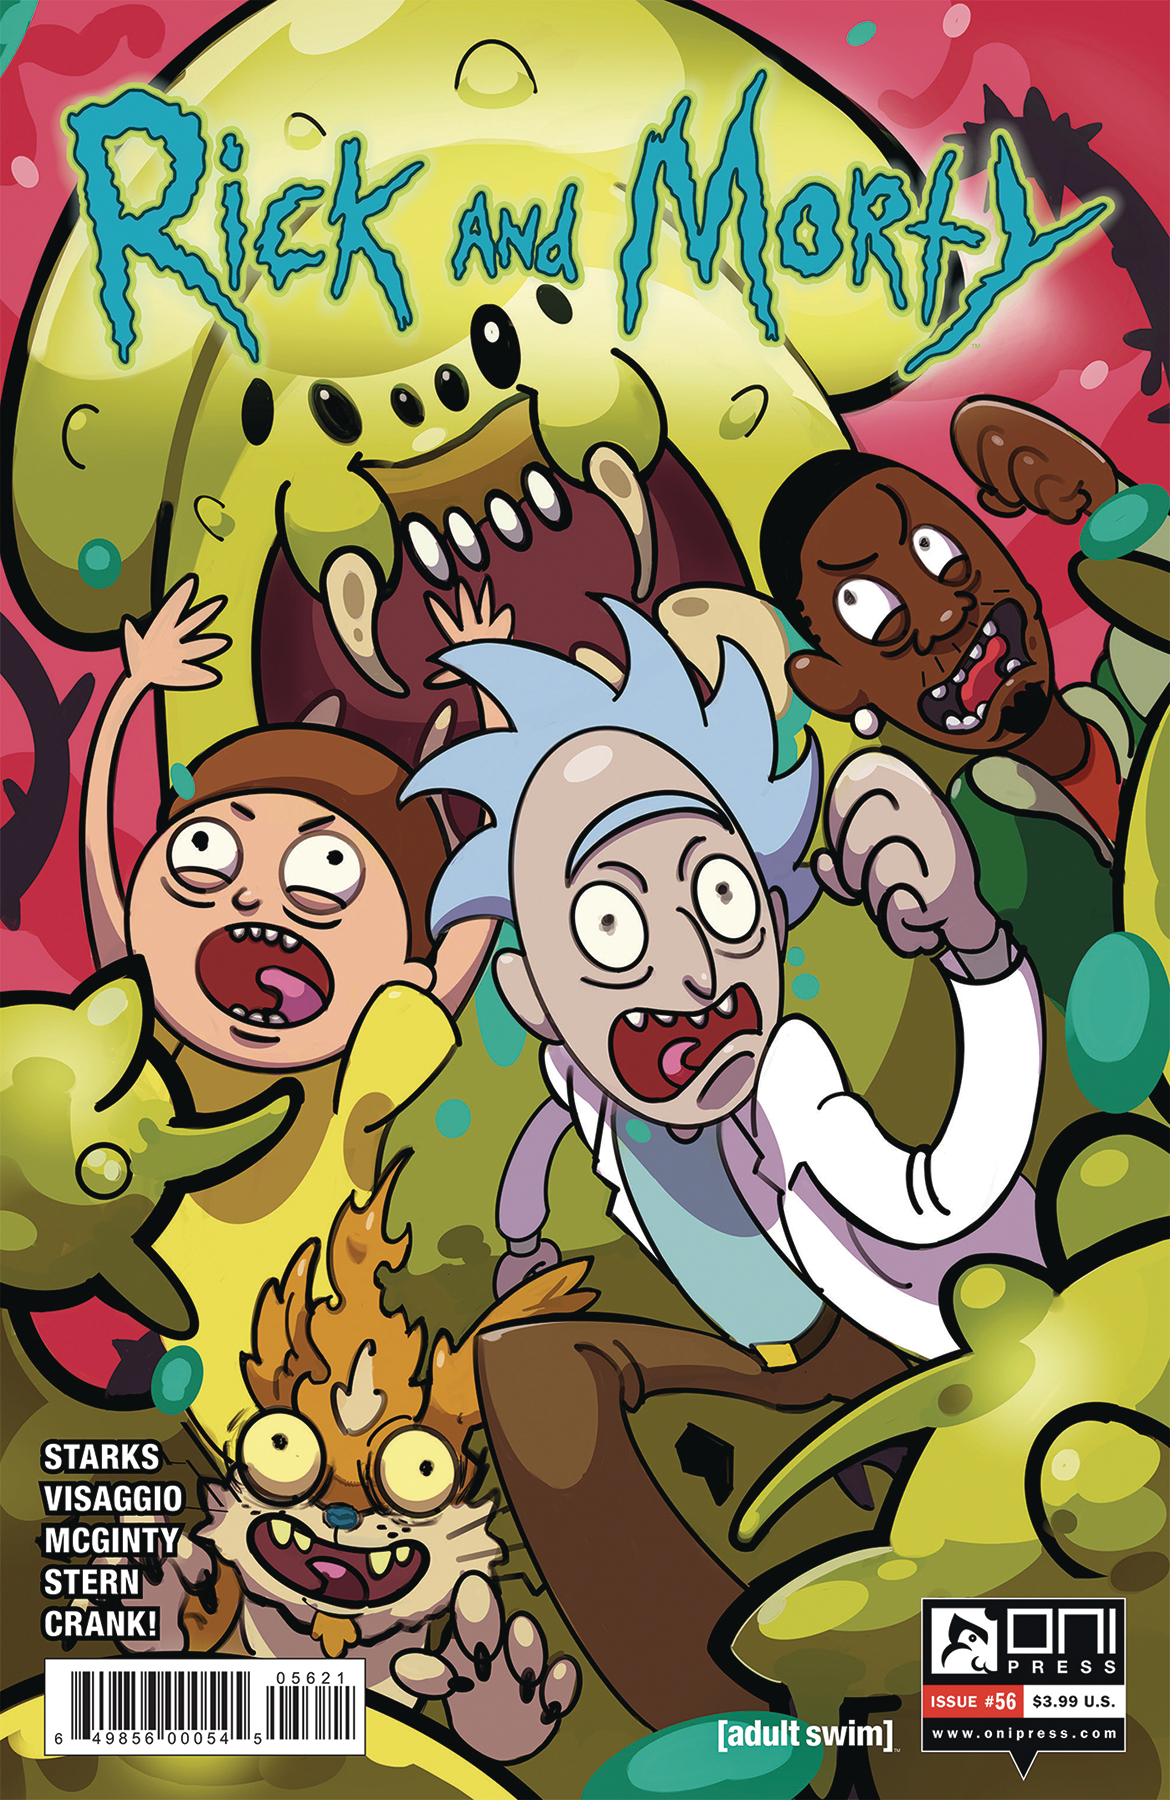 Rick and Morty Issue 56